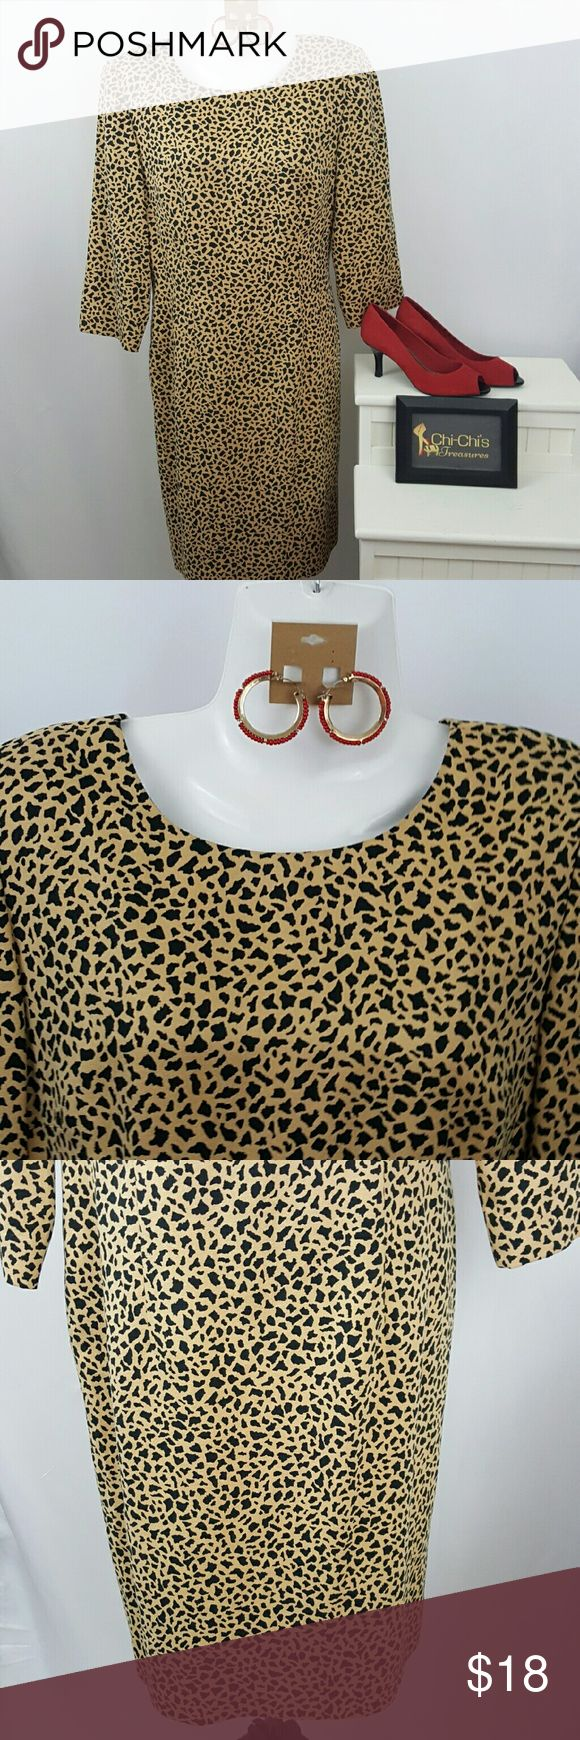 """Animal print dress size 10 petite. Animal print dress size 10 petite by Donna Morgan. Bust 18"""", Sleeve 17 3/4"""", length 36"""". 100% polyester. Zips in the back. Earrings and shoes sold separately. Donna Morgan Dresses Long Sleeve"""